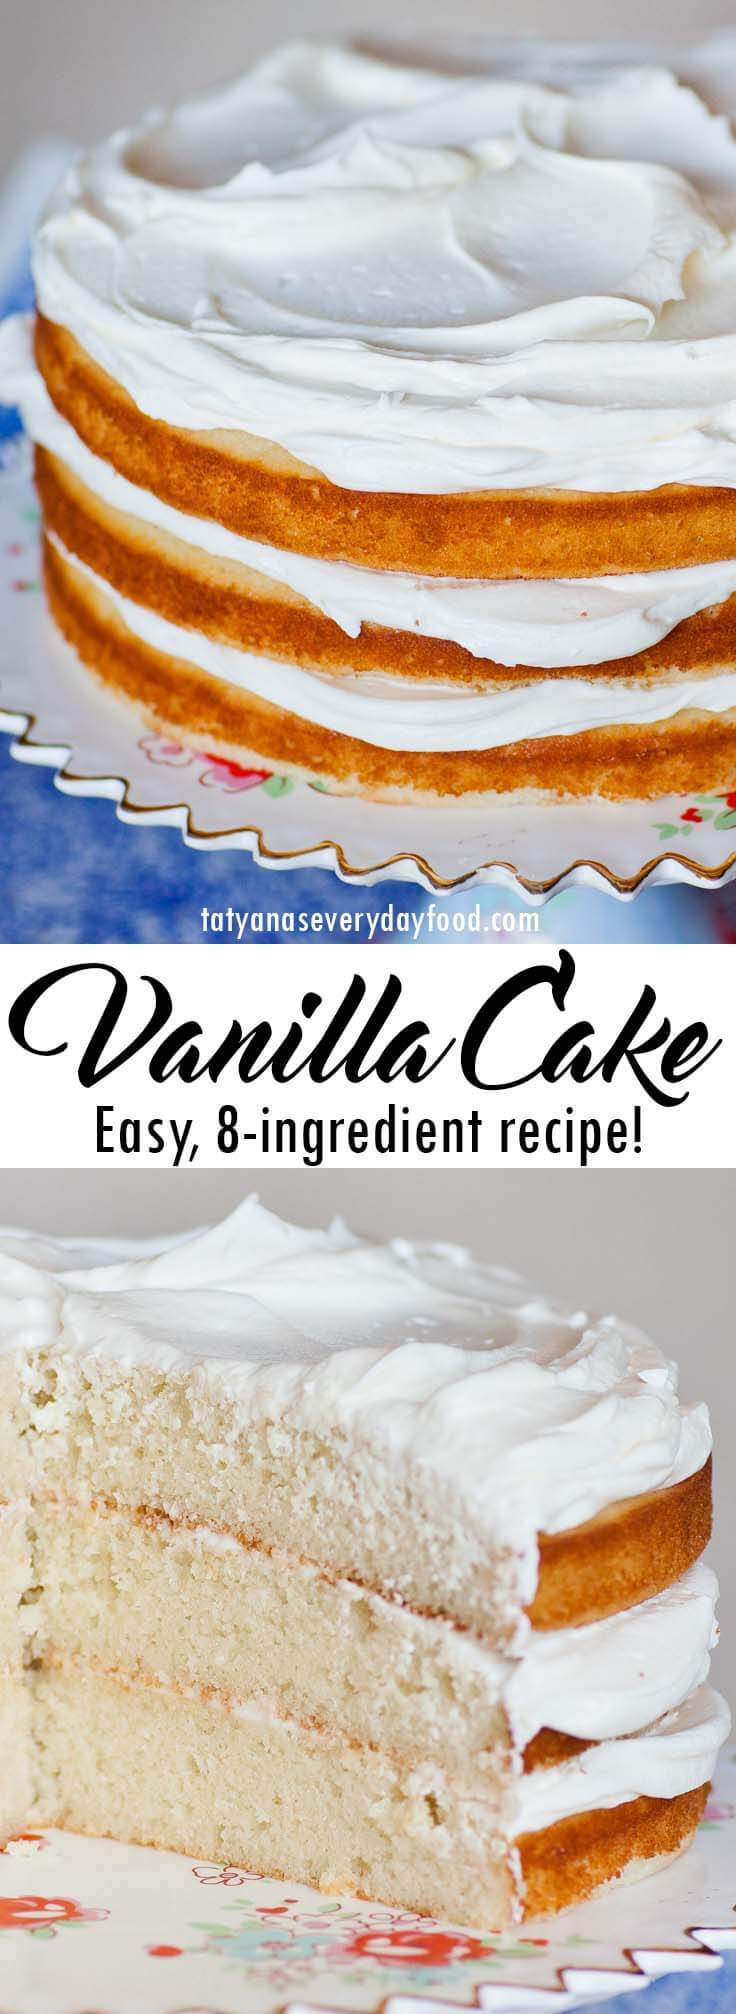 Easy Vanilla Cake Recipe video recipe